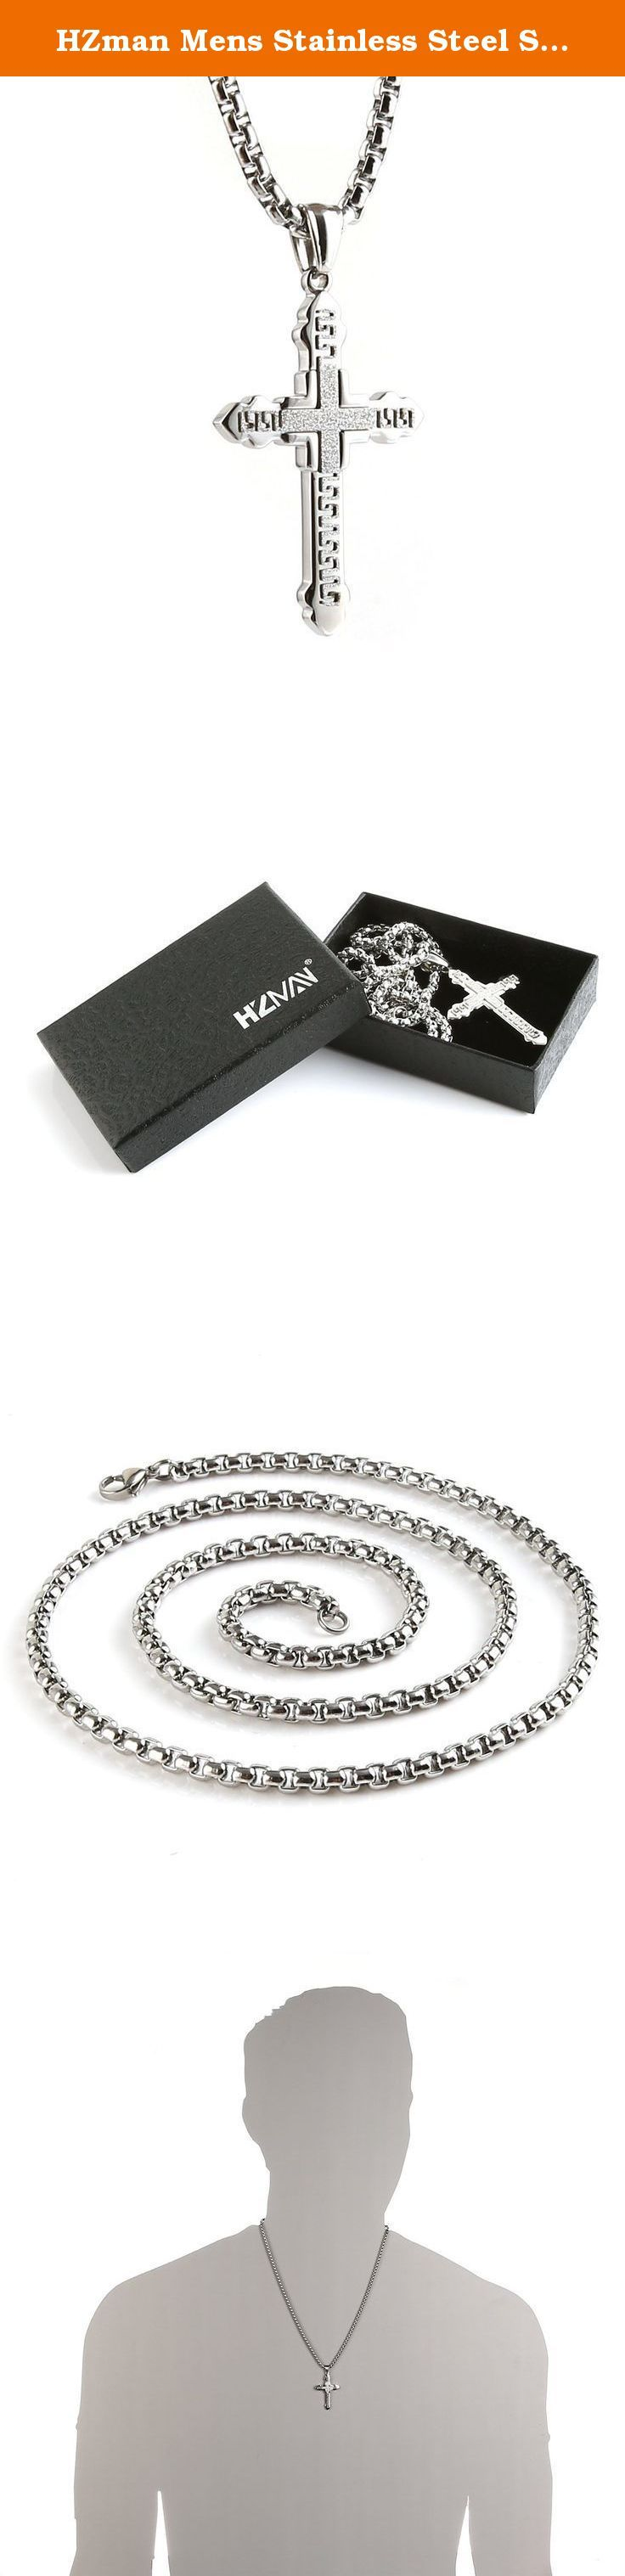 HZman Mens Stainless Steel Silver Tone Greek Key Cross Pendant Necklace Rolo Cable Wheat Chain. 30 DAY MONEY BACK GUARANTEE-100% satisfaction guaranteed. That is our promise. So, if you're not completely happy with your purchase within the first 30 days, just let us know. We will do whatever it takes to make it right Provide The Best Quality jewelry and Customer Service on Amazon. Why choose Stainless Steel Jewelry? Stainless Steel jewelry does not tarnish and oxidize, which can last…